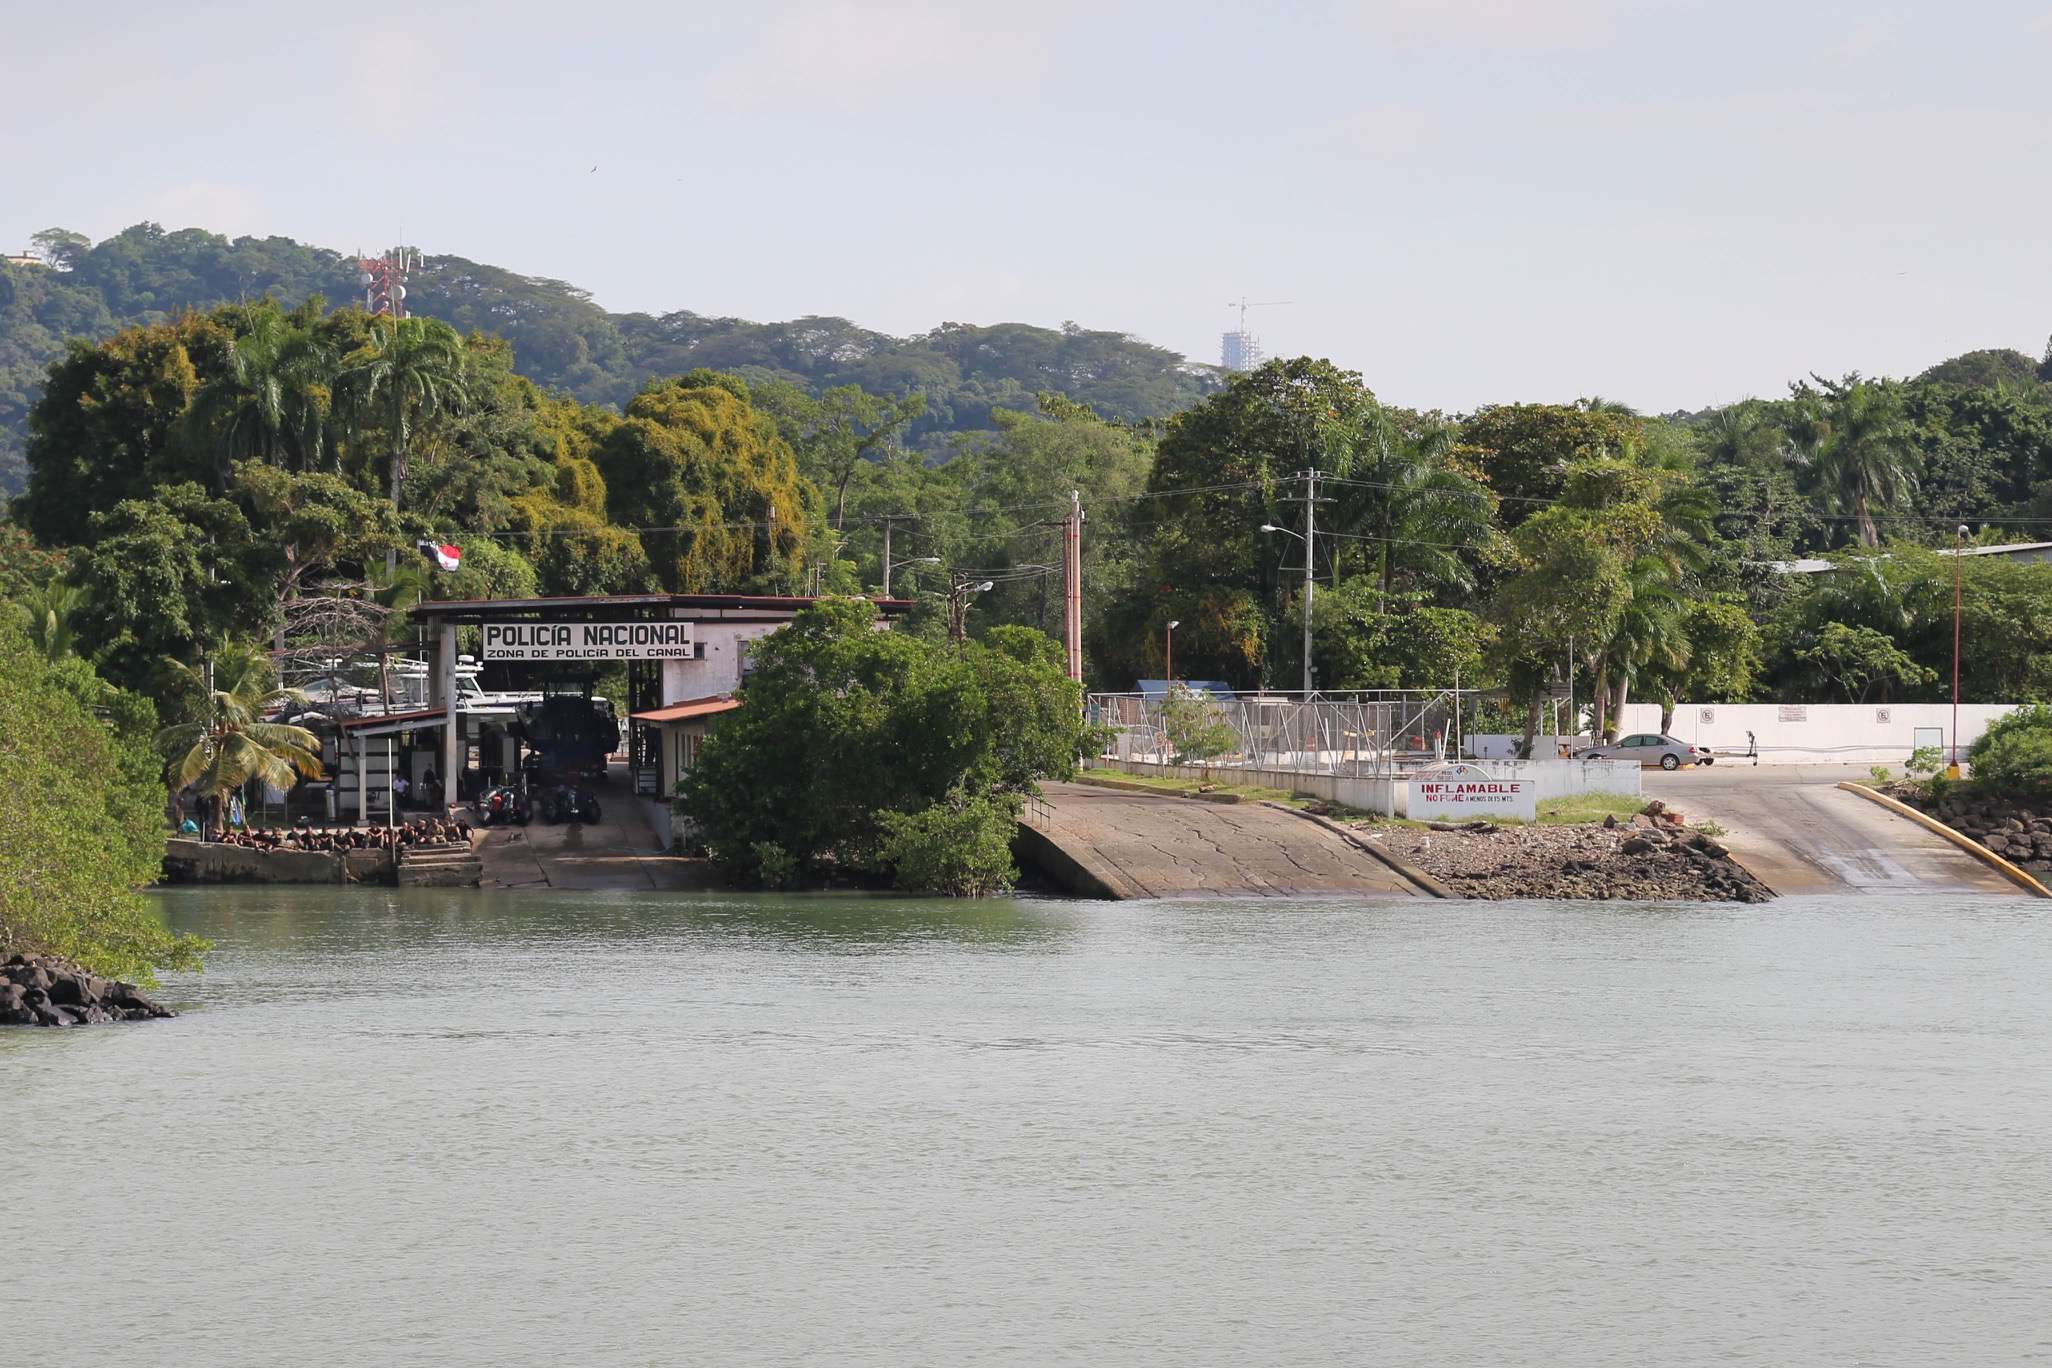 While the 20 or so men to the left of the dock seemed relaxed, they have the equipment and wherewithal to immediately respond to any problem within the Panama Canal zone.